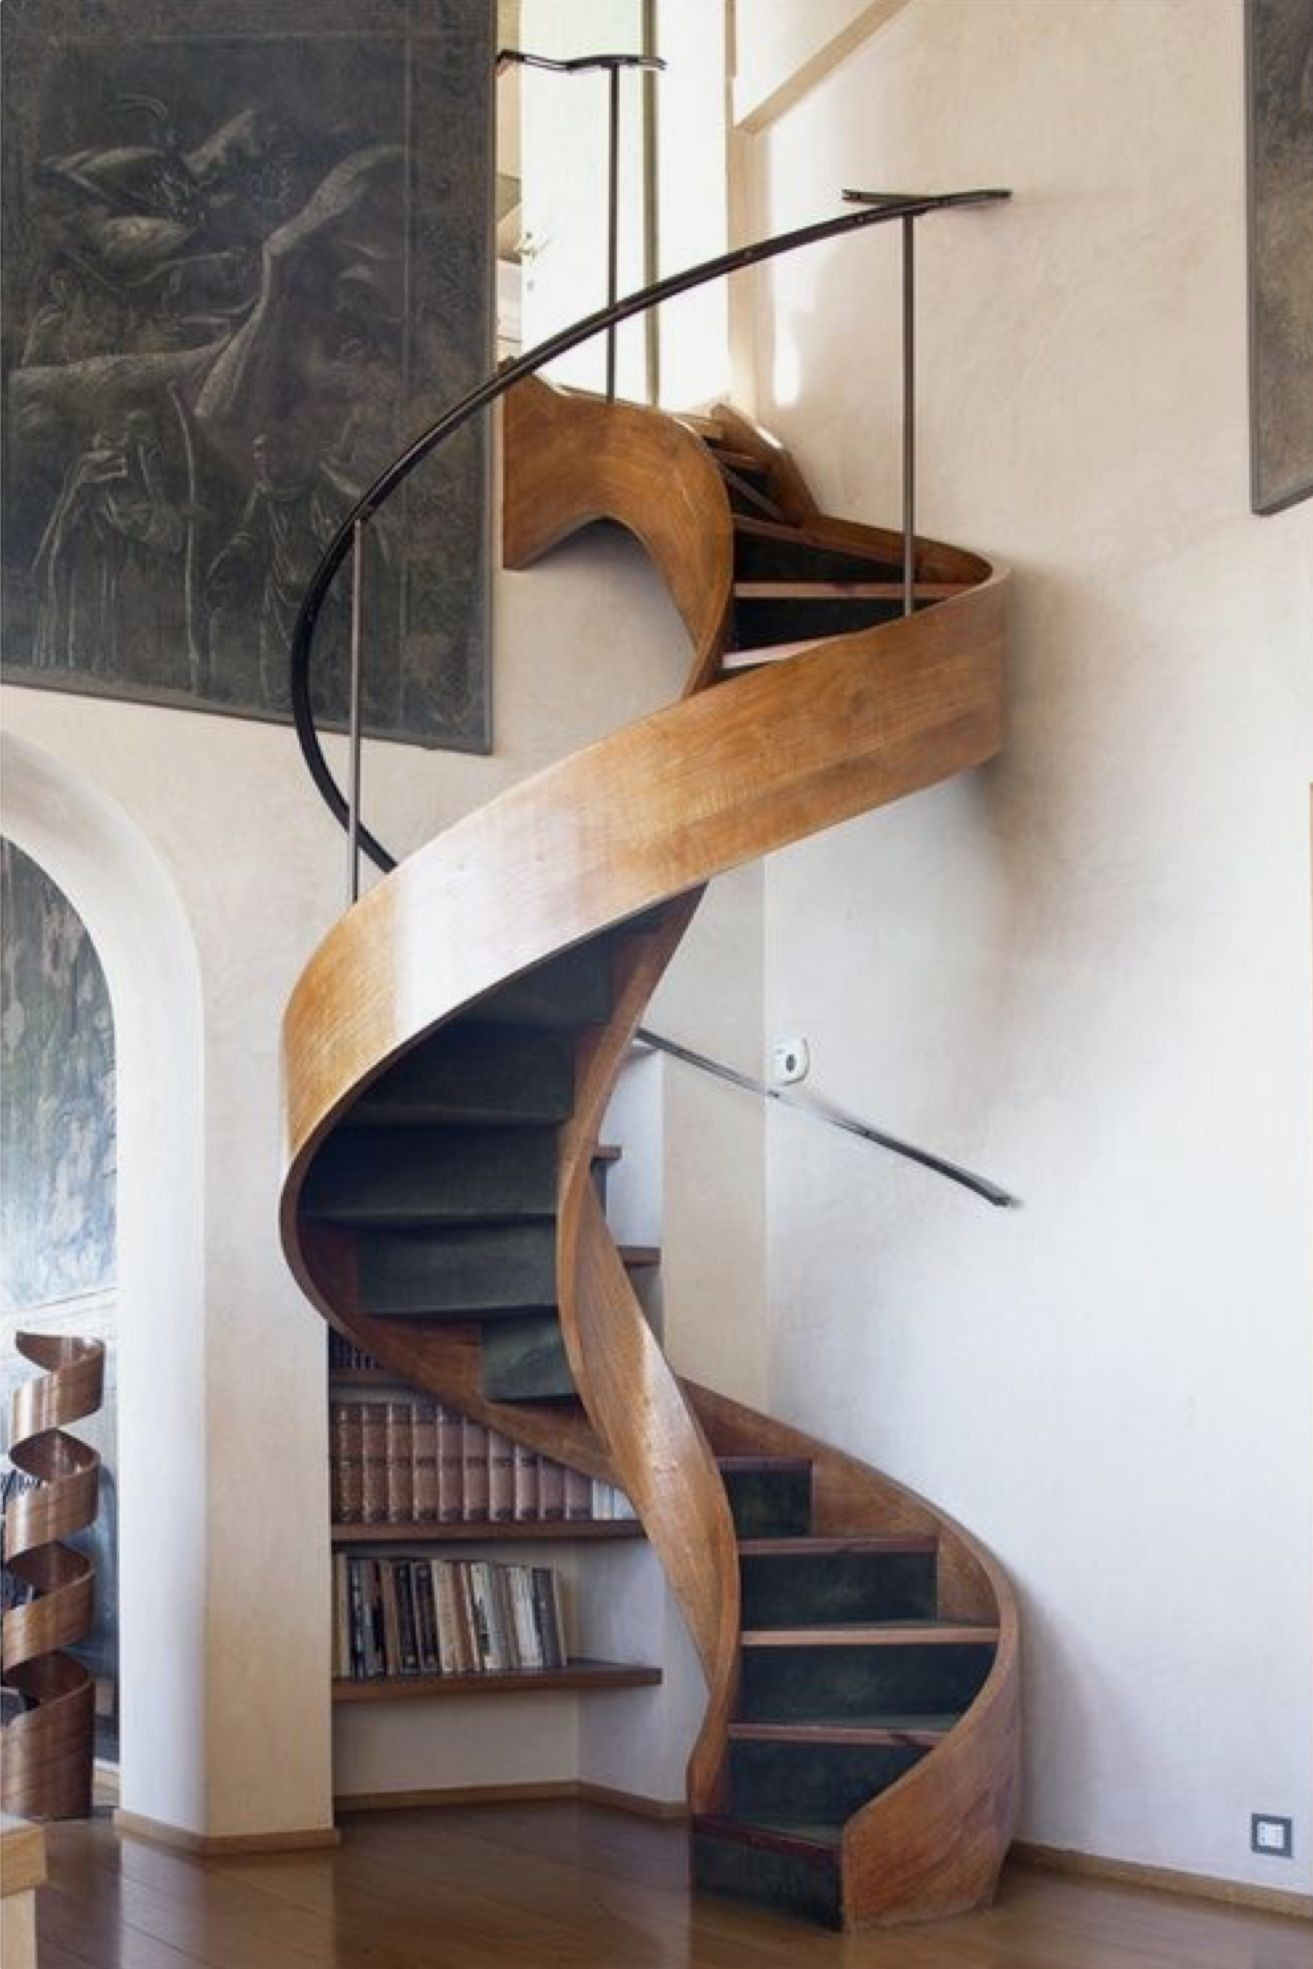 Loft With Stairs For 2020 Ideas On Foter | Loft Stairs For Small Spaces | Child Friendly | Studio Apartment Minimalist | Corner | Steel | Loft Staircase